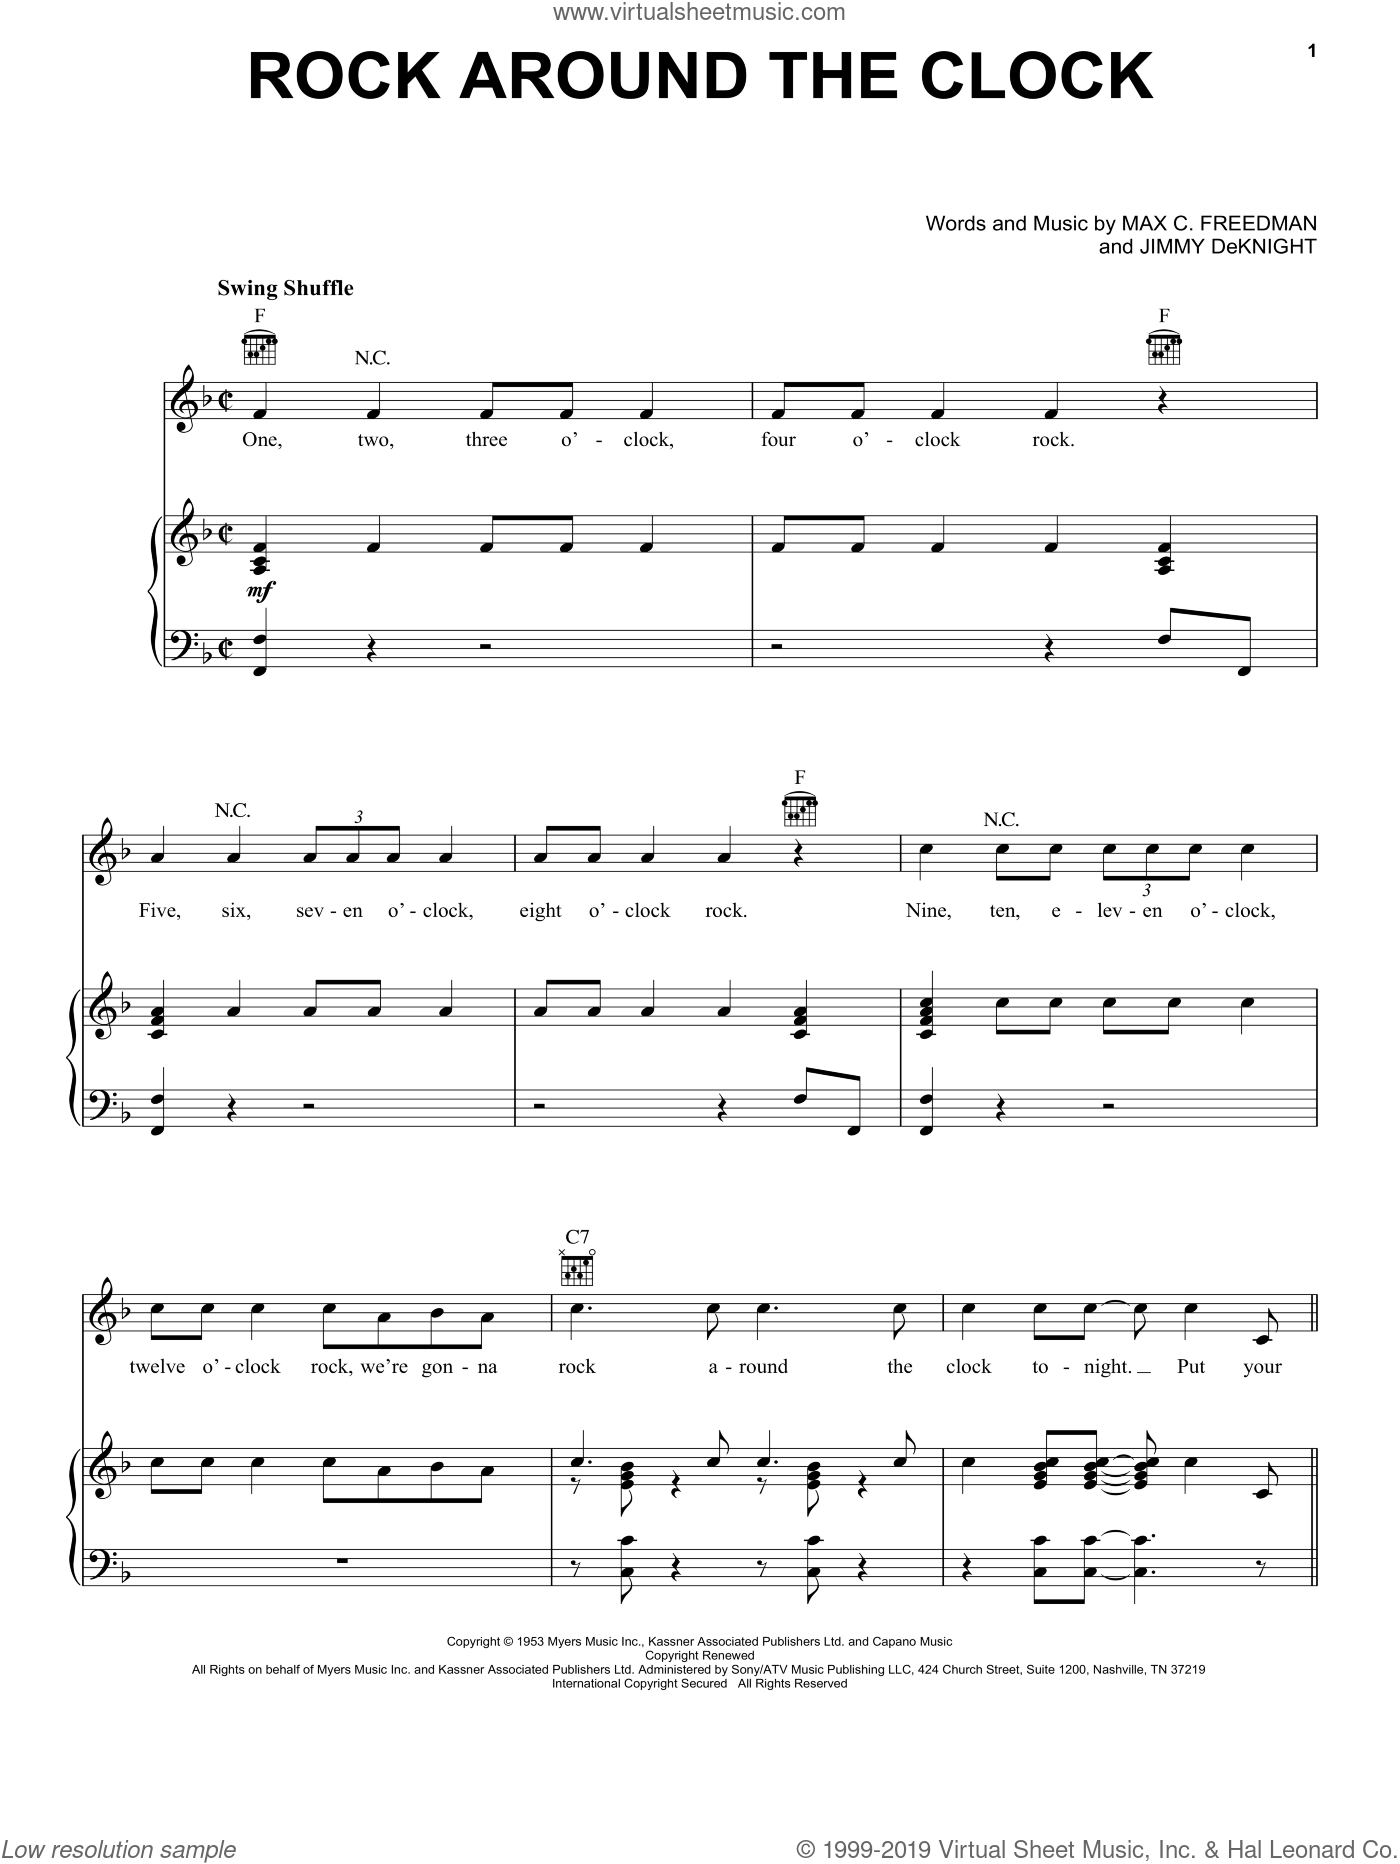 Rock Around The Clock sheet music for voice, piano or guitar by Bill Haley & His Comets, Bill Haley, Jimmy DeKnight and Max C. Freedman, intermediate skill level